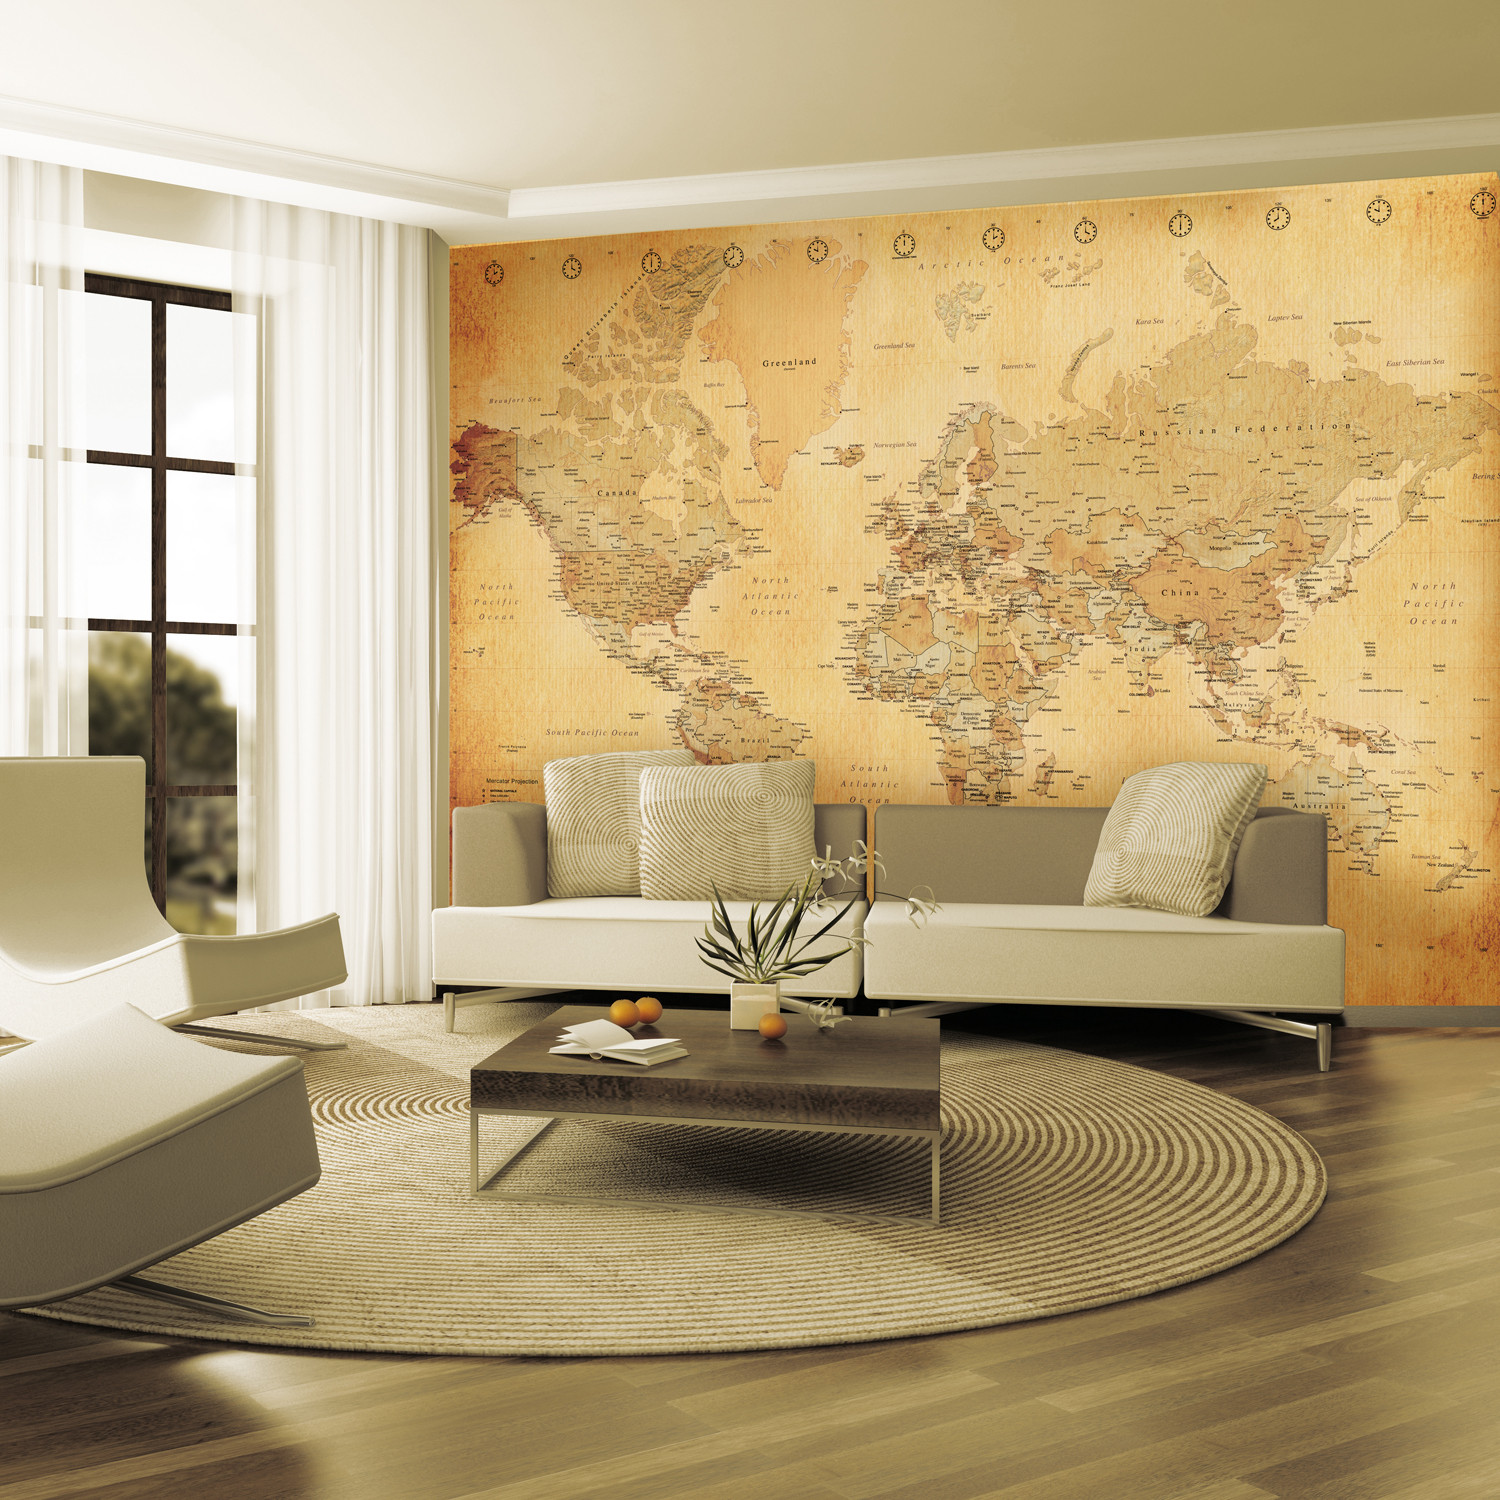 Vintage World Map - 1 Wall Murals Touch Of Modern